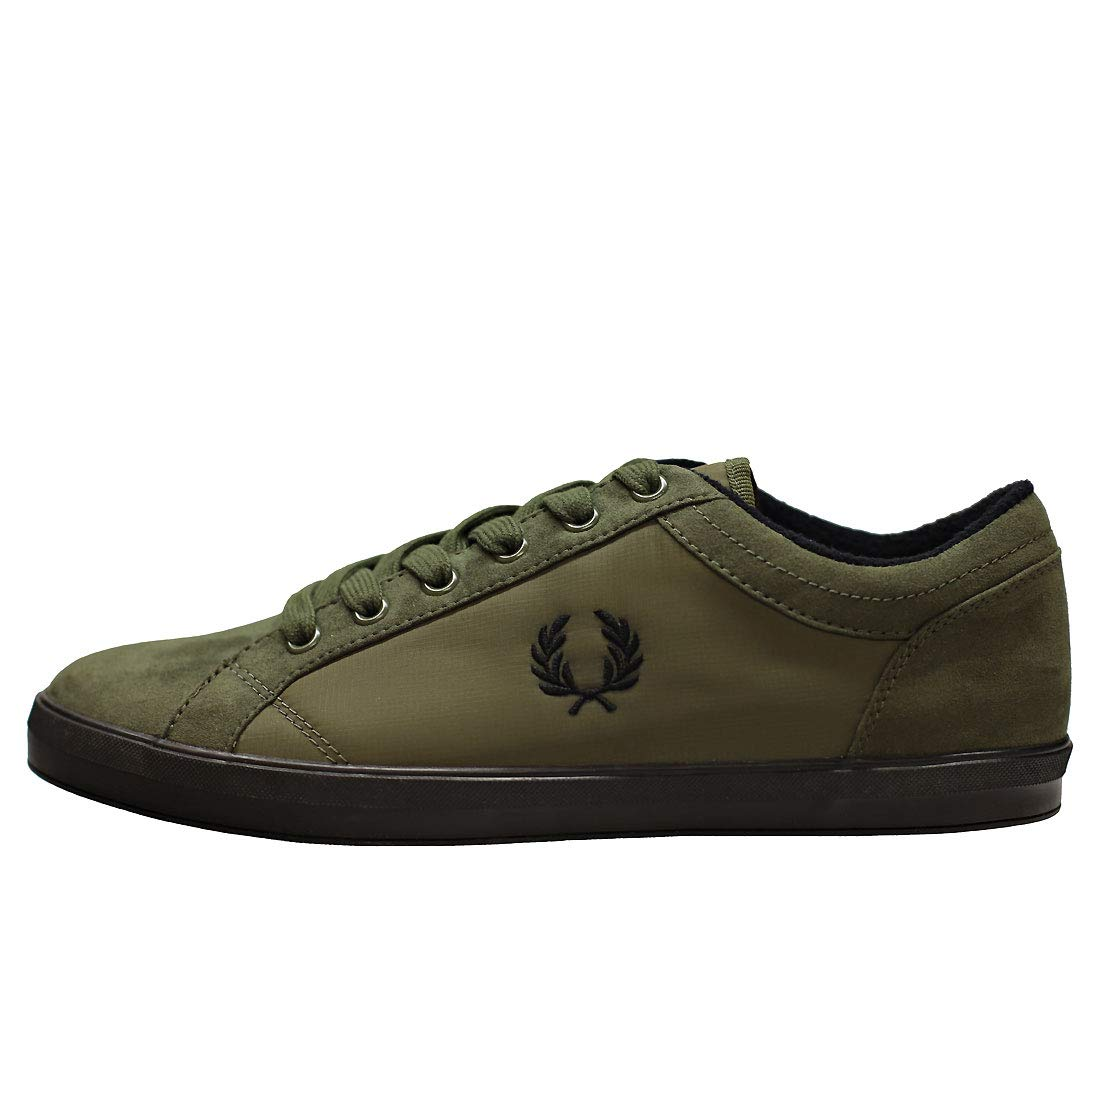 Zapatillas verdes nailon y microfibra Fred Perry